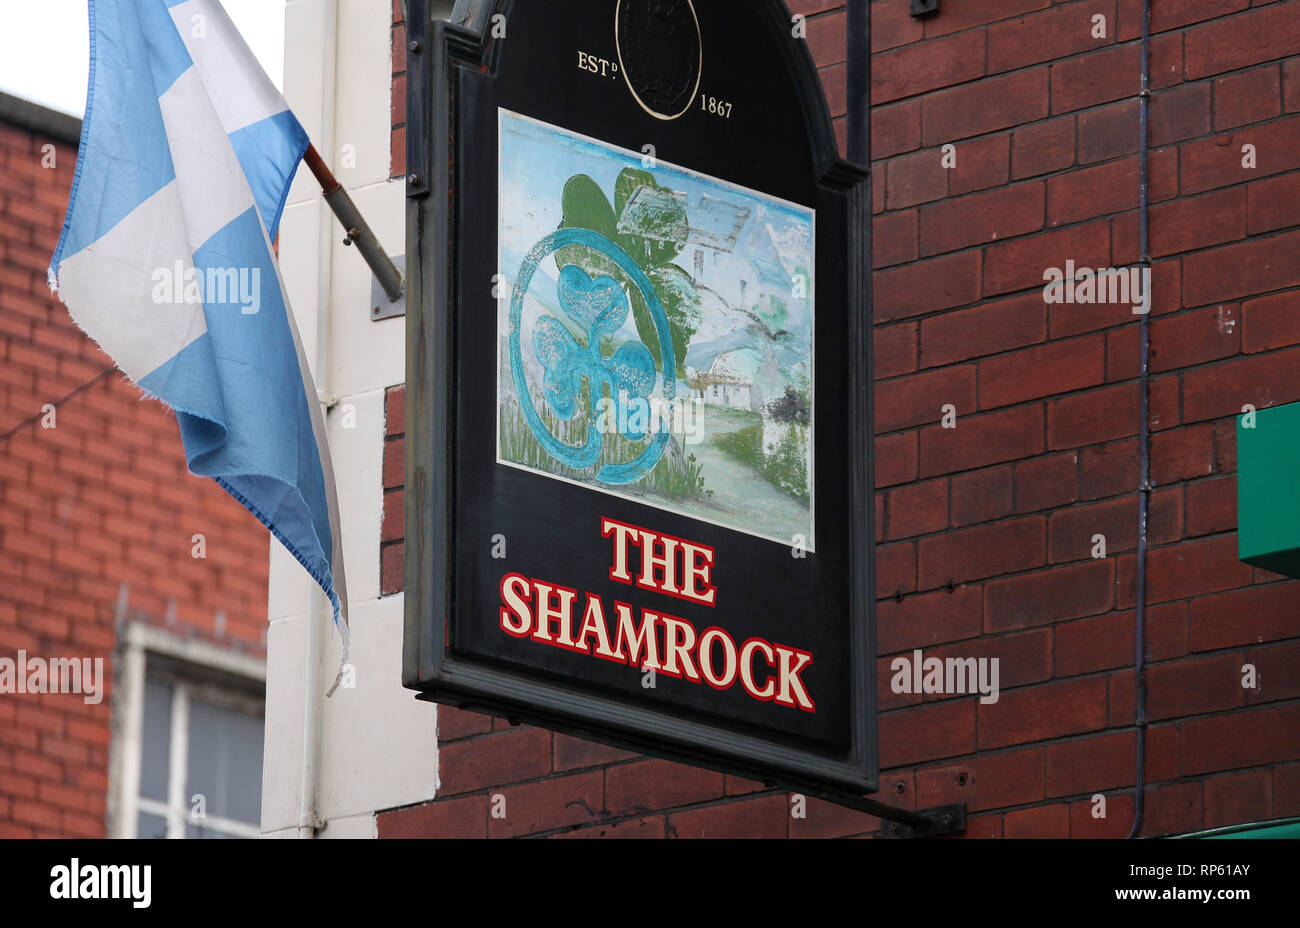 The Shamrock pub at Ancoats in Manchester - Stock Image